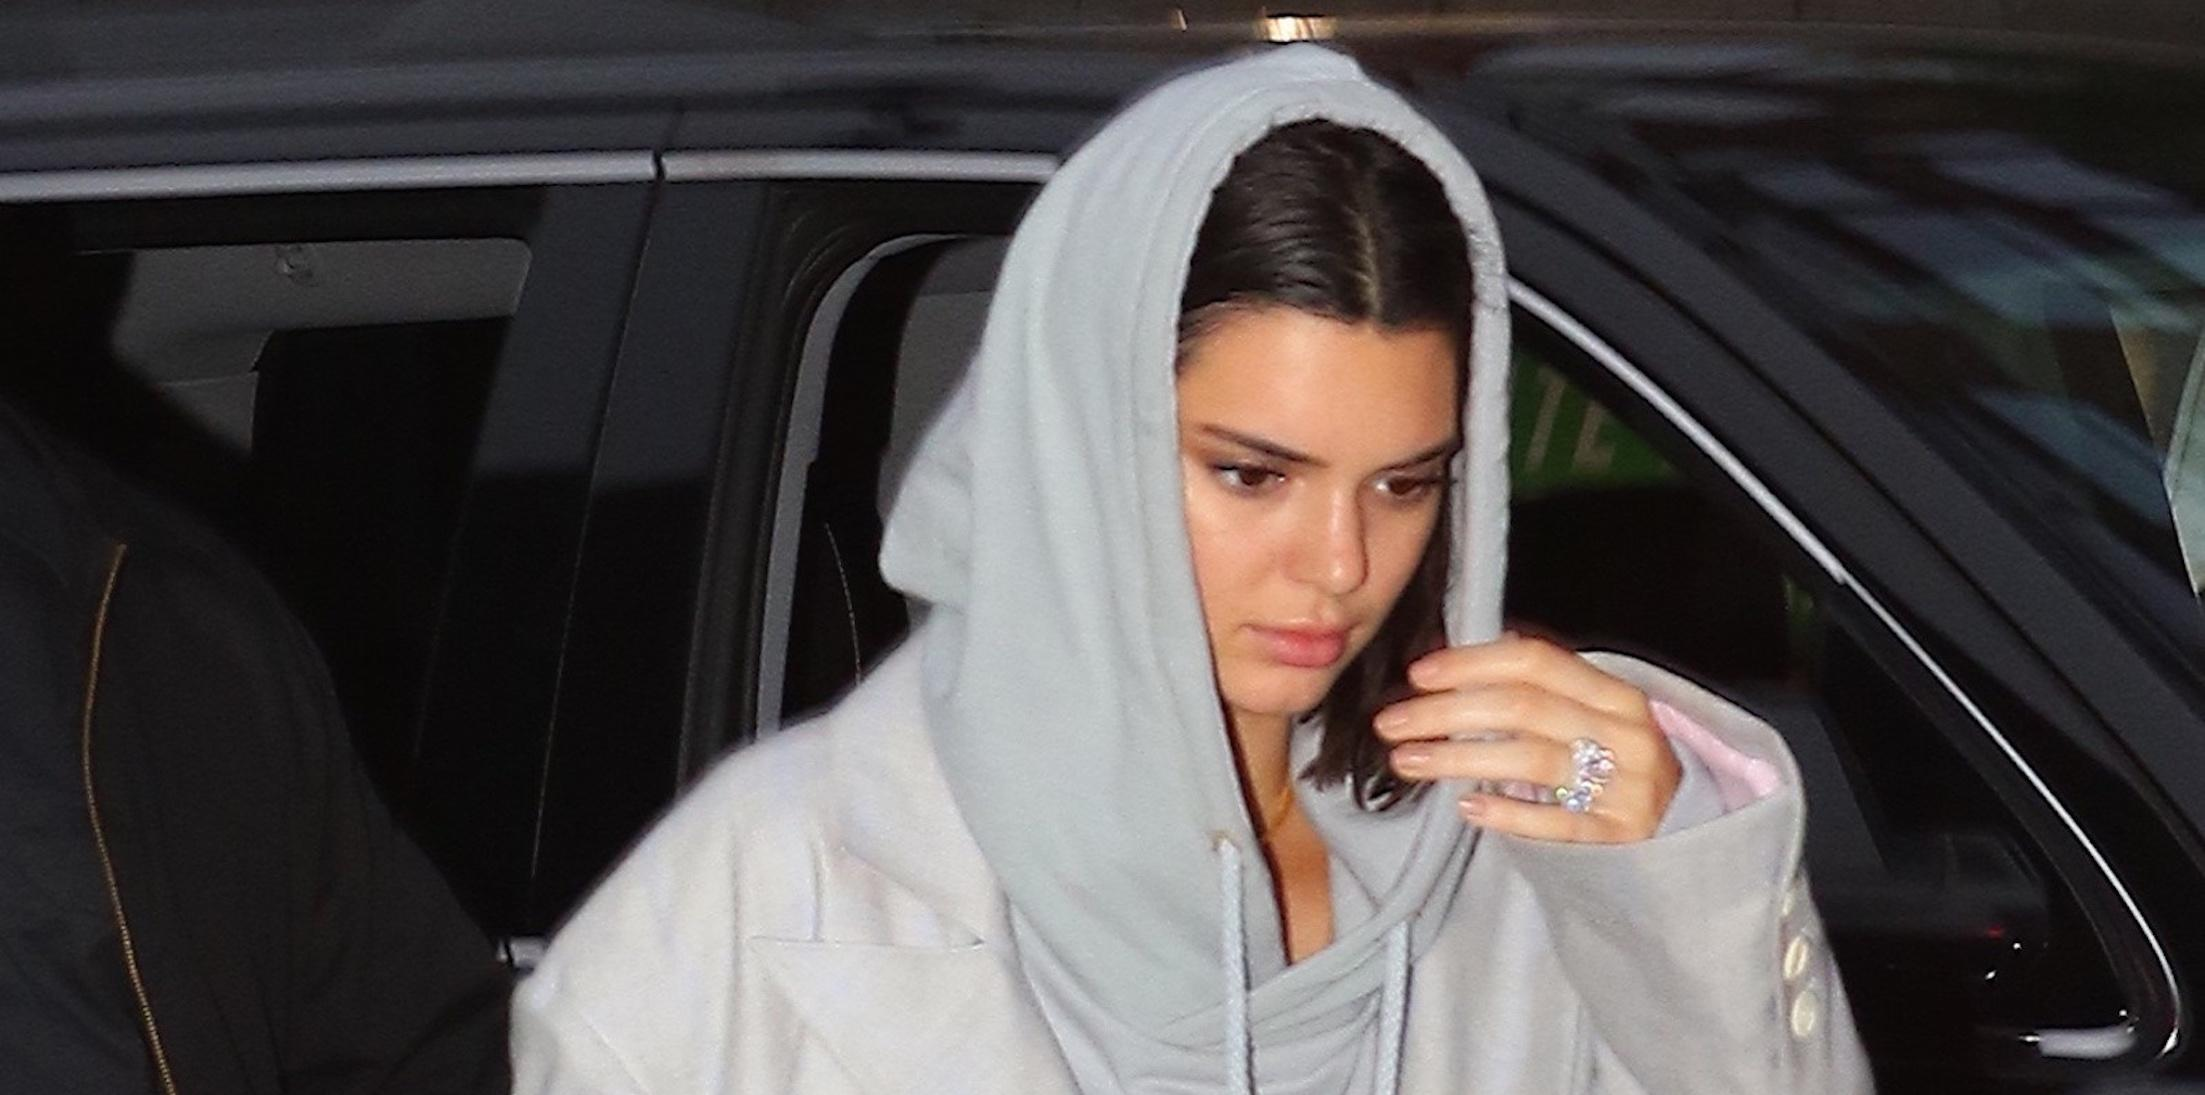 Kendall Jenner shows off a diamond ring on her engagement finger while out with ASAP Rocky